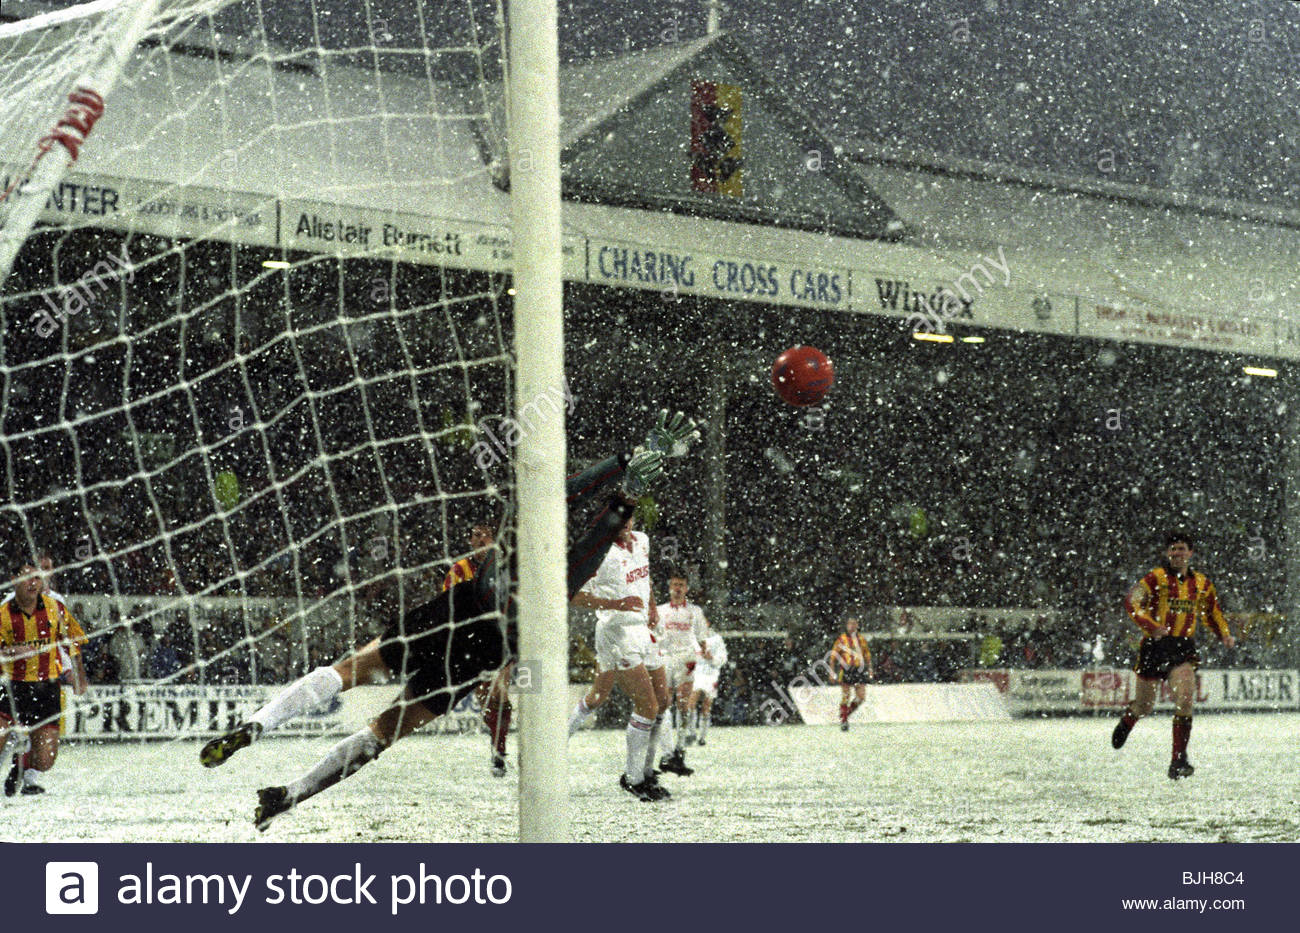 21/11/92 PARTICK THISTLE V ABERDEEN 0-2) FIR HILL - GLASGOW Aberdeen goalkeeper Theo Snelders (foreground) dives - Stock Image